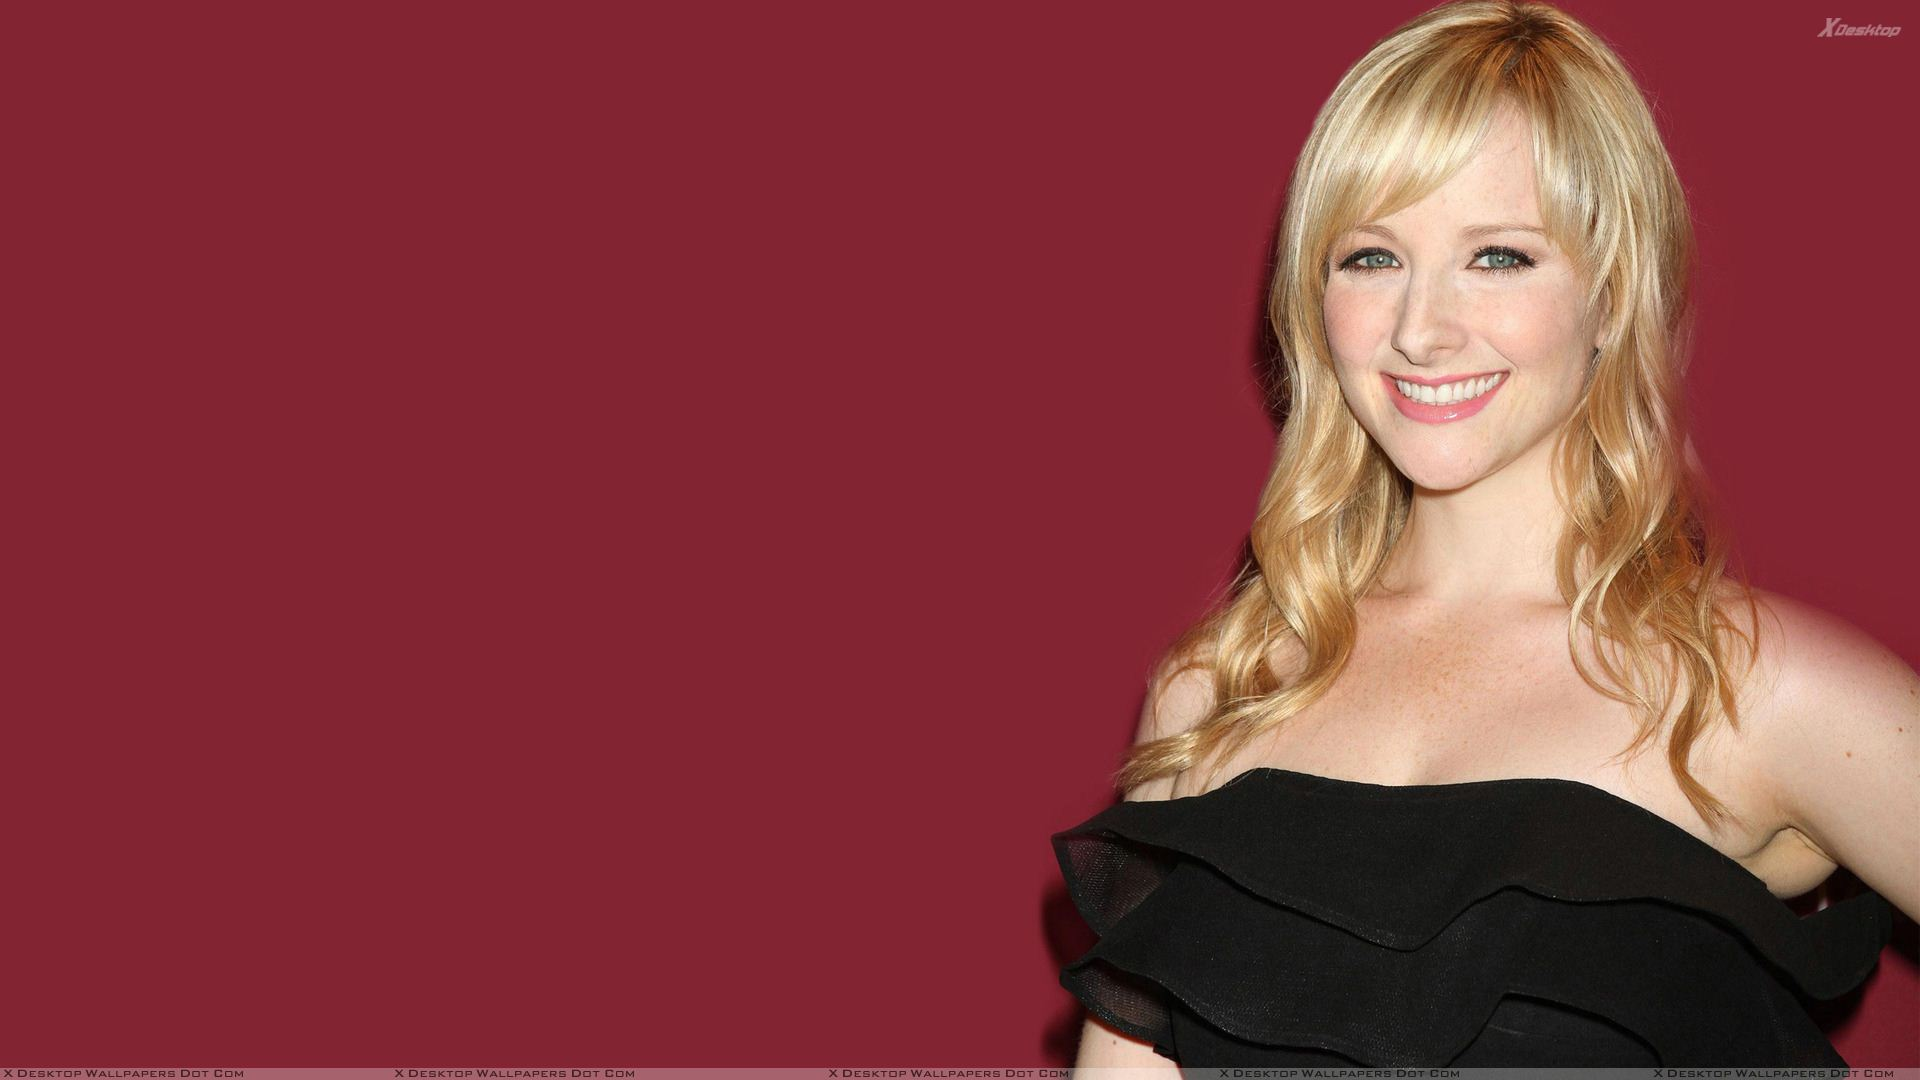 Celebrites Melissa Rauch nude (91 foto and video), Ass, Paparazzi, Boobs, panties 2020